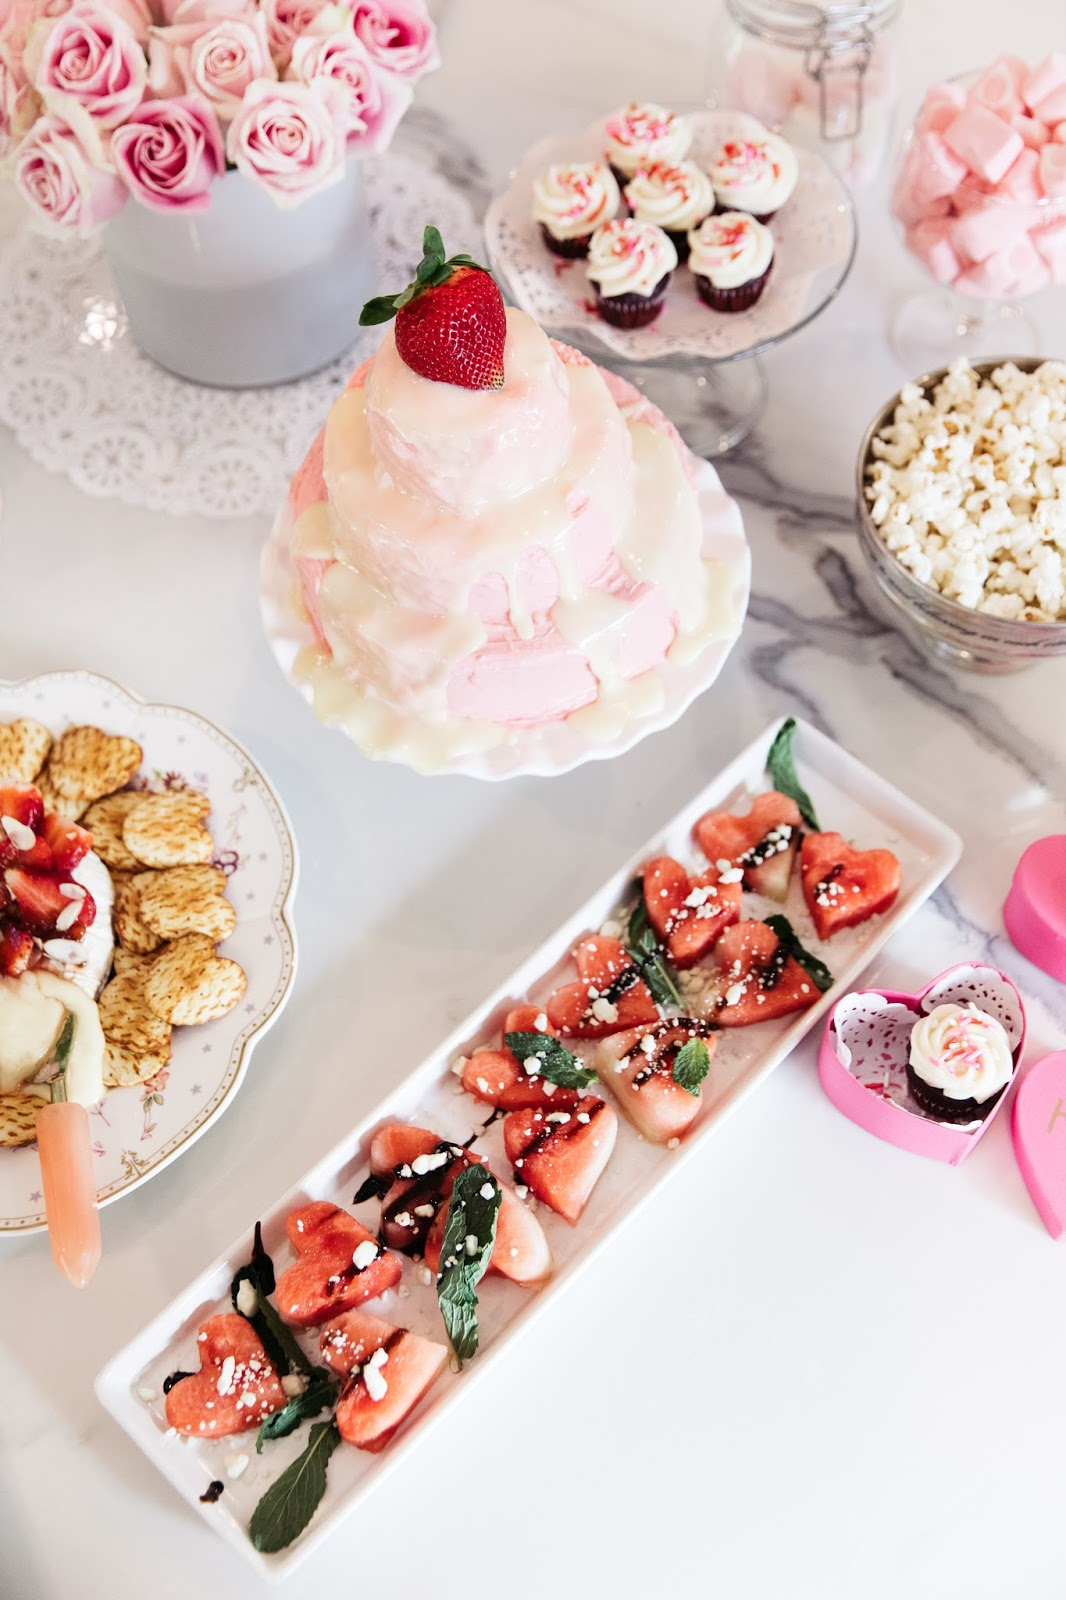 A chic spread of sweet and savory treats for your galentine's day party